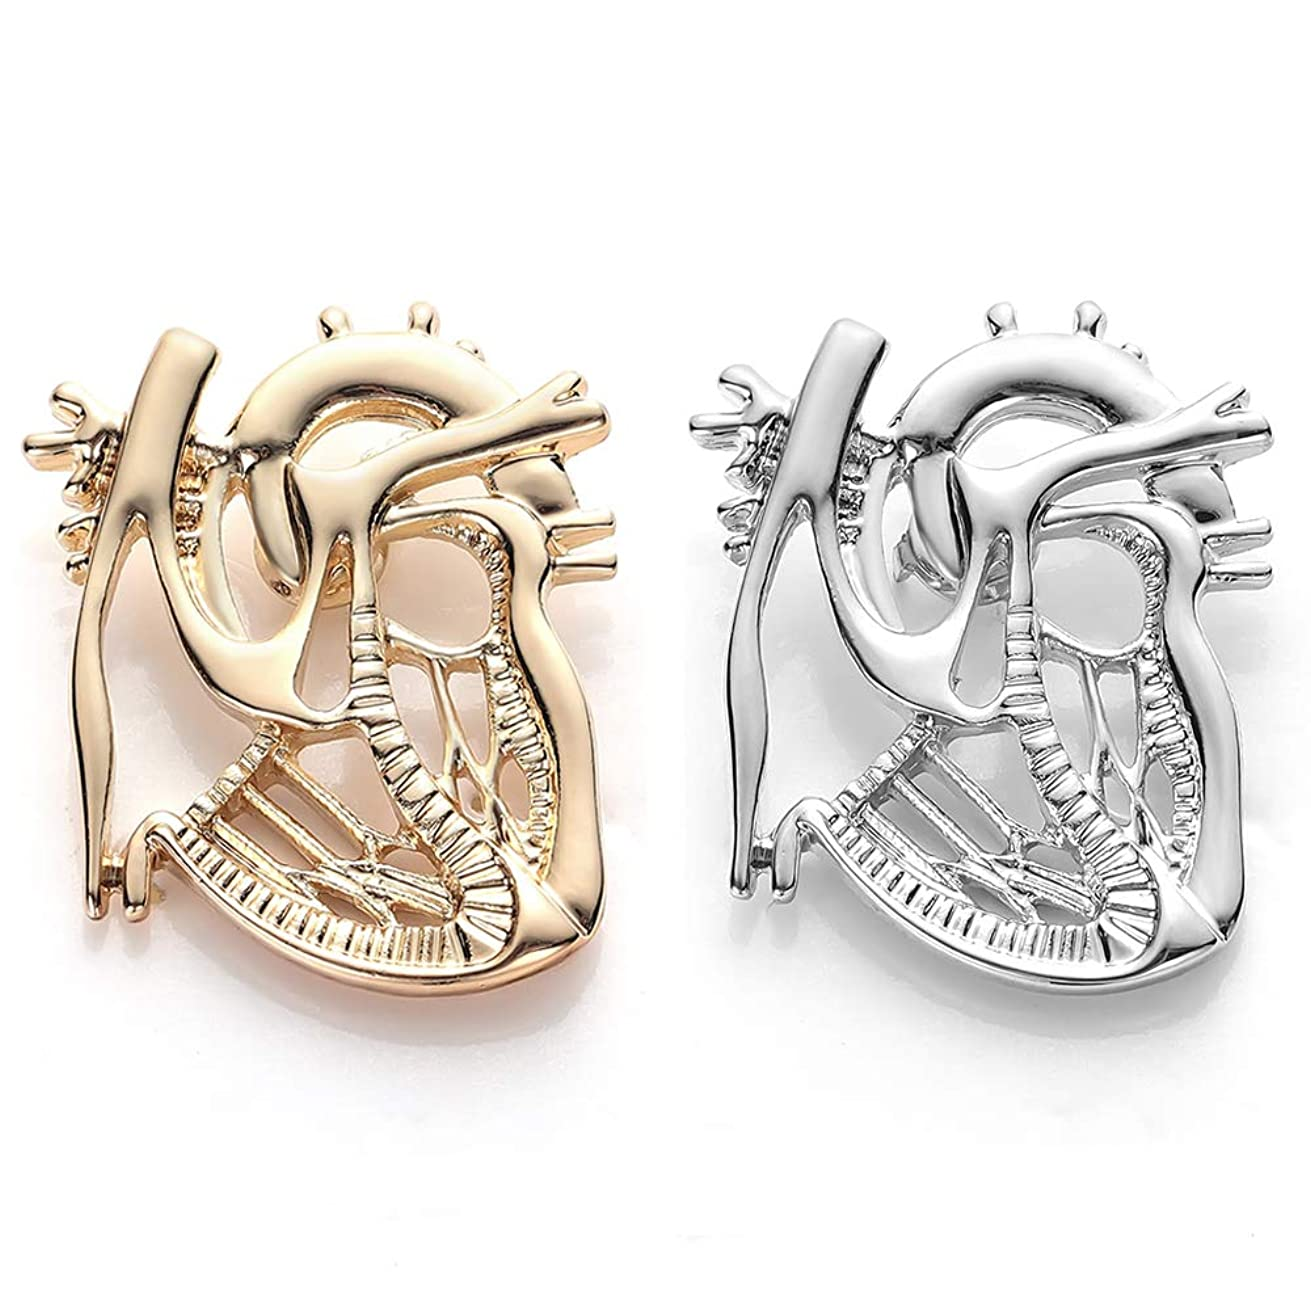 hanreshe Heart Shape Brooch Pin 2 Pieces Gold Silver Plated Jewelry Gift Doctor Nurse Student Medical Christmas Pin Badge Pins Men